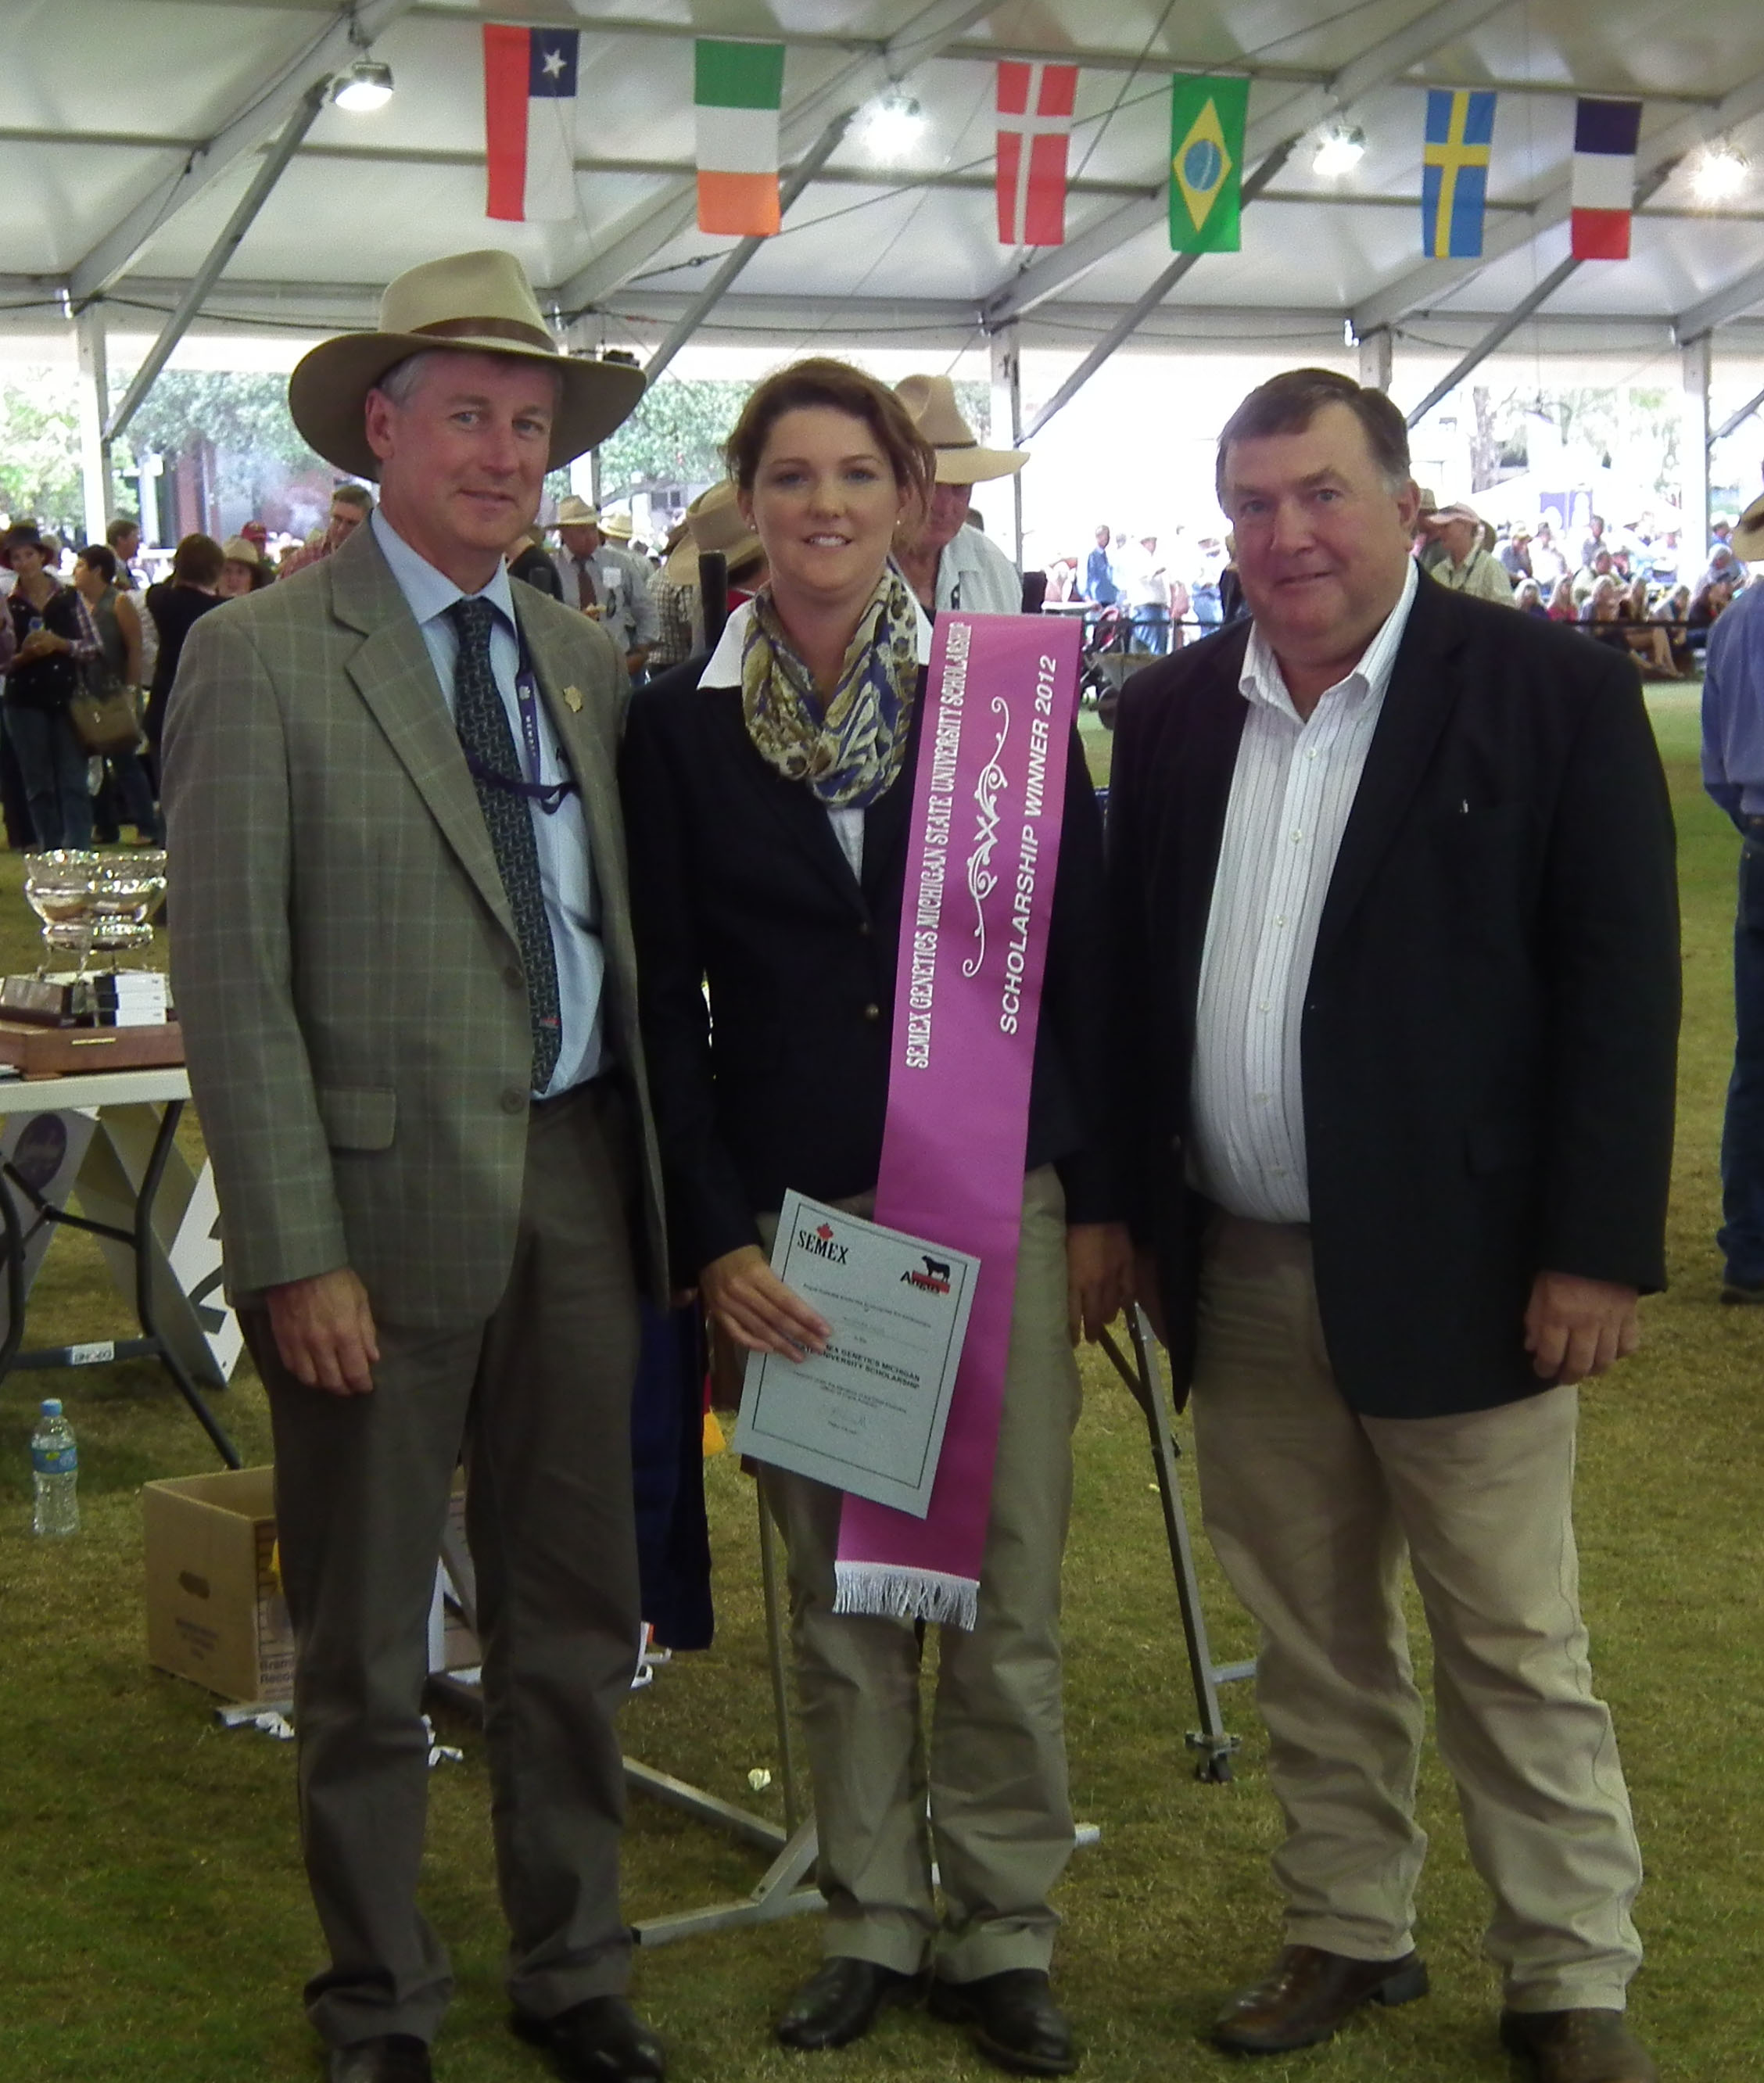 Peter Parnell with Amanda Giles 2012 and Jim Conroy